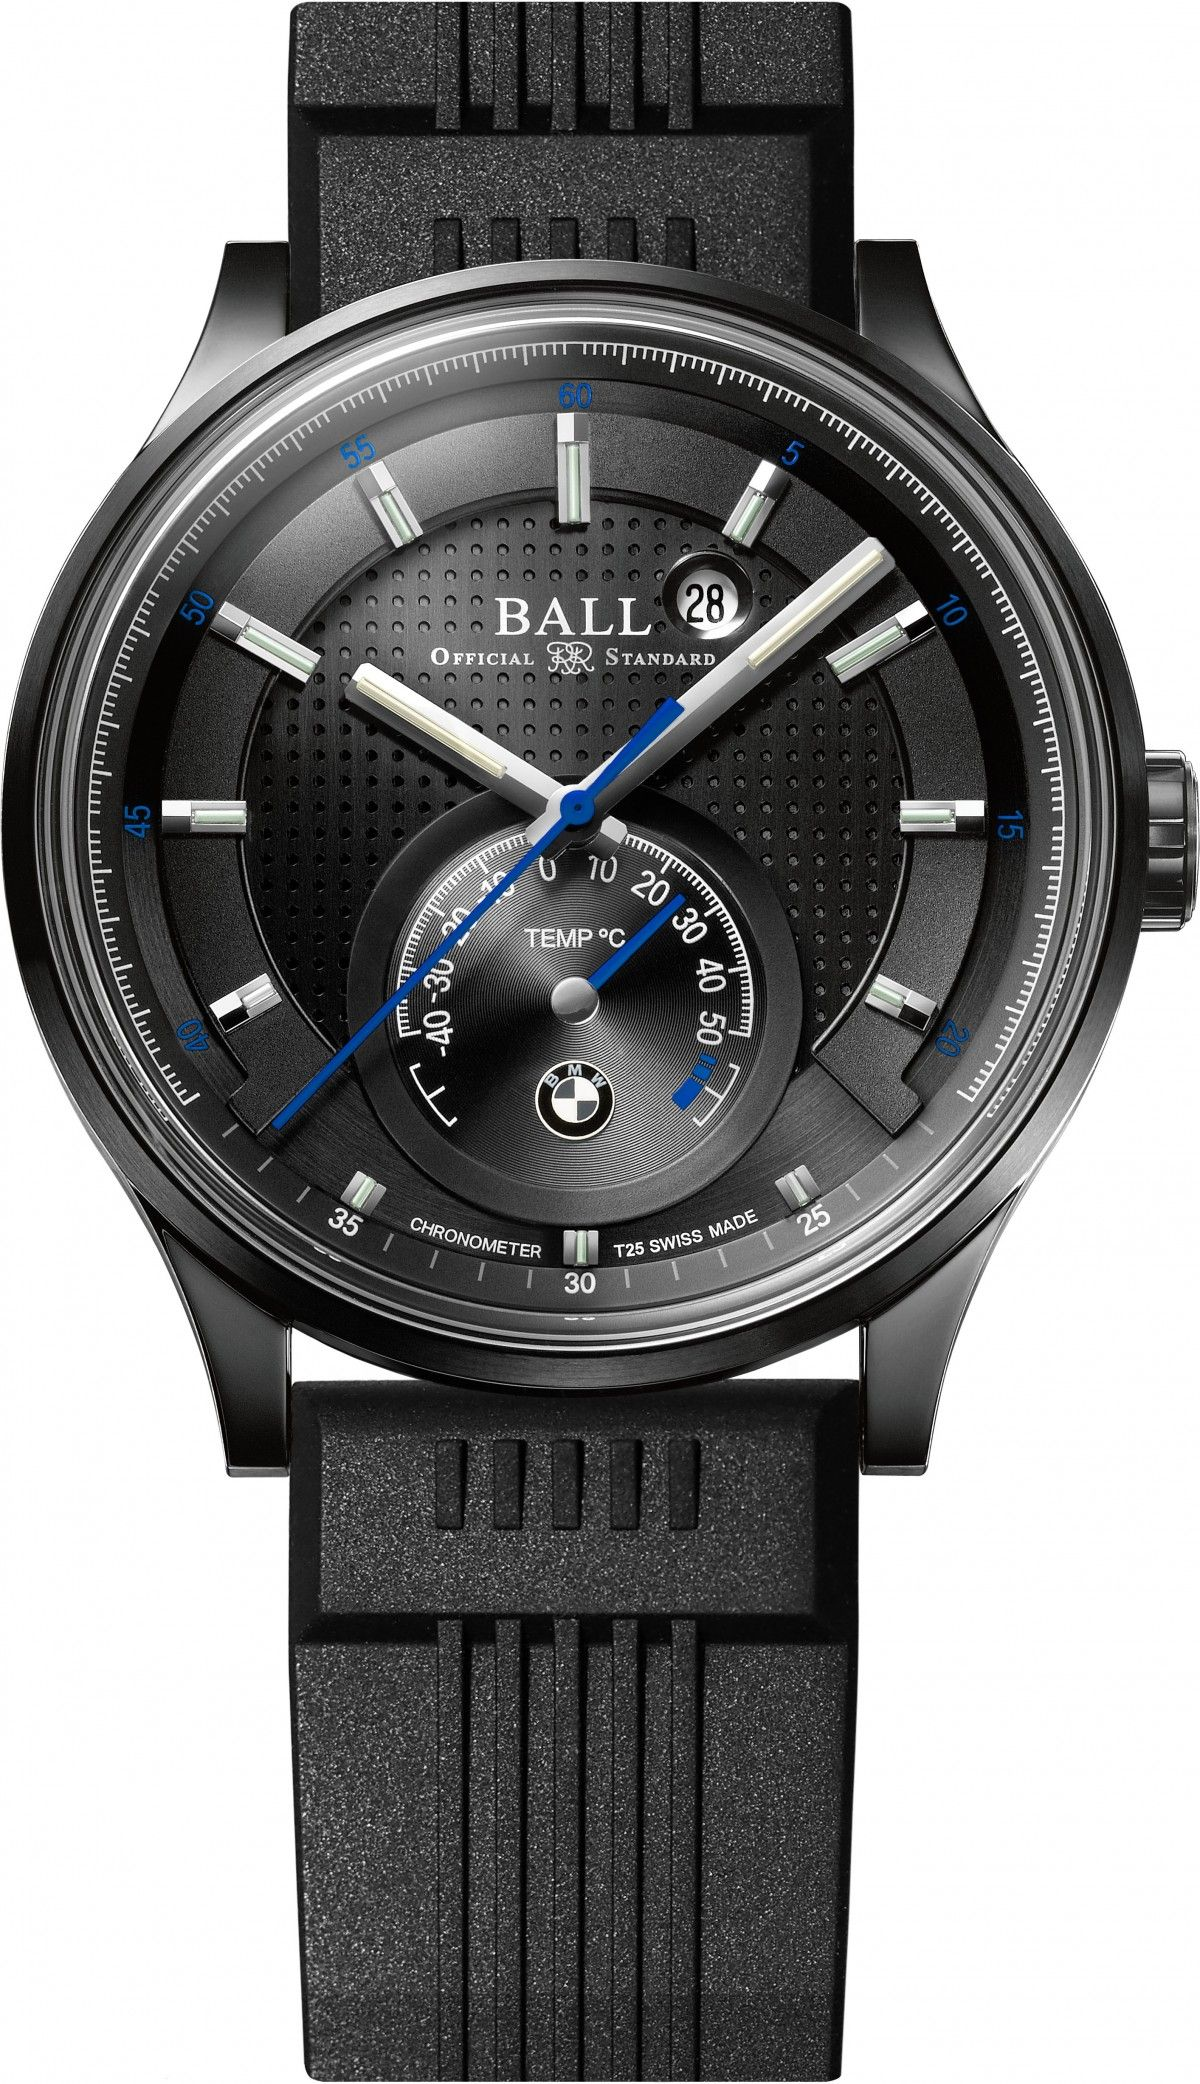 183a4d8a62c Limited Edition Ball for BMW TMT Chronometer Celebrates BMW s 100 ...